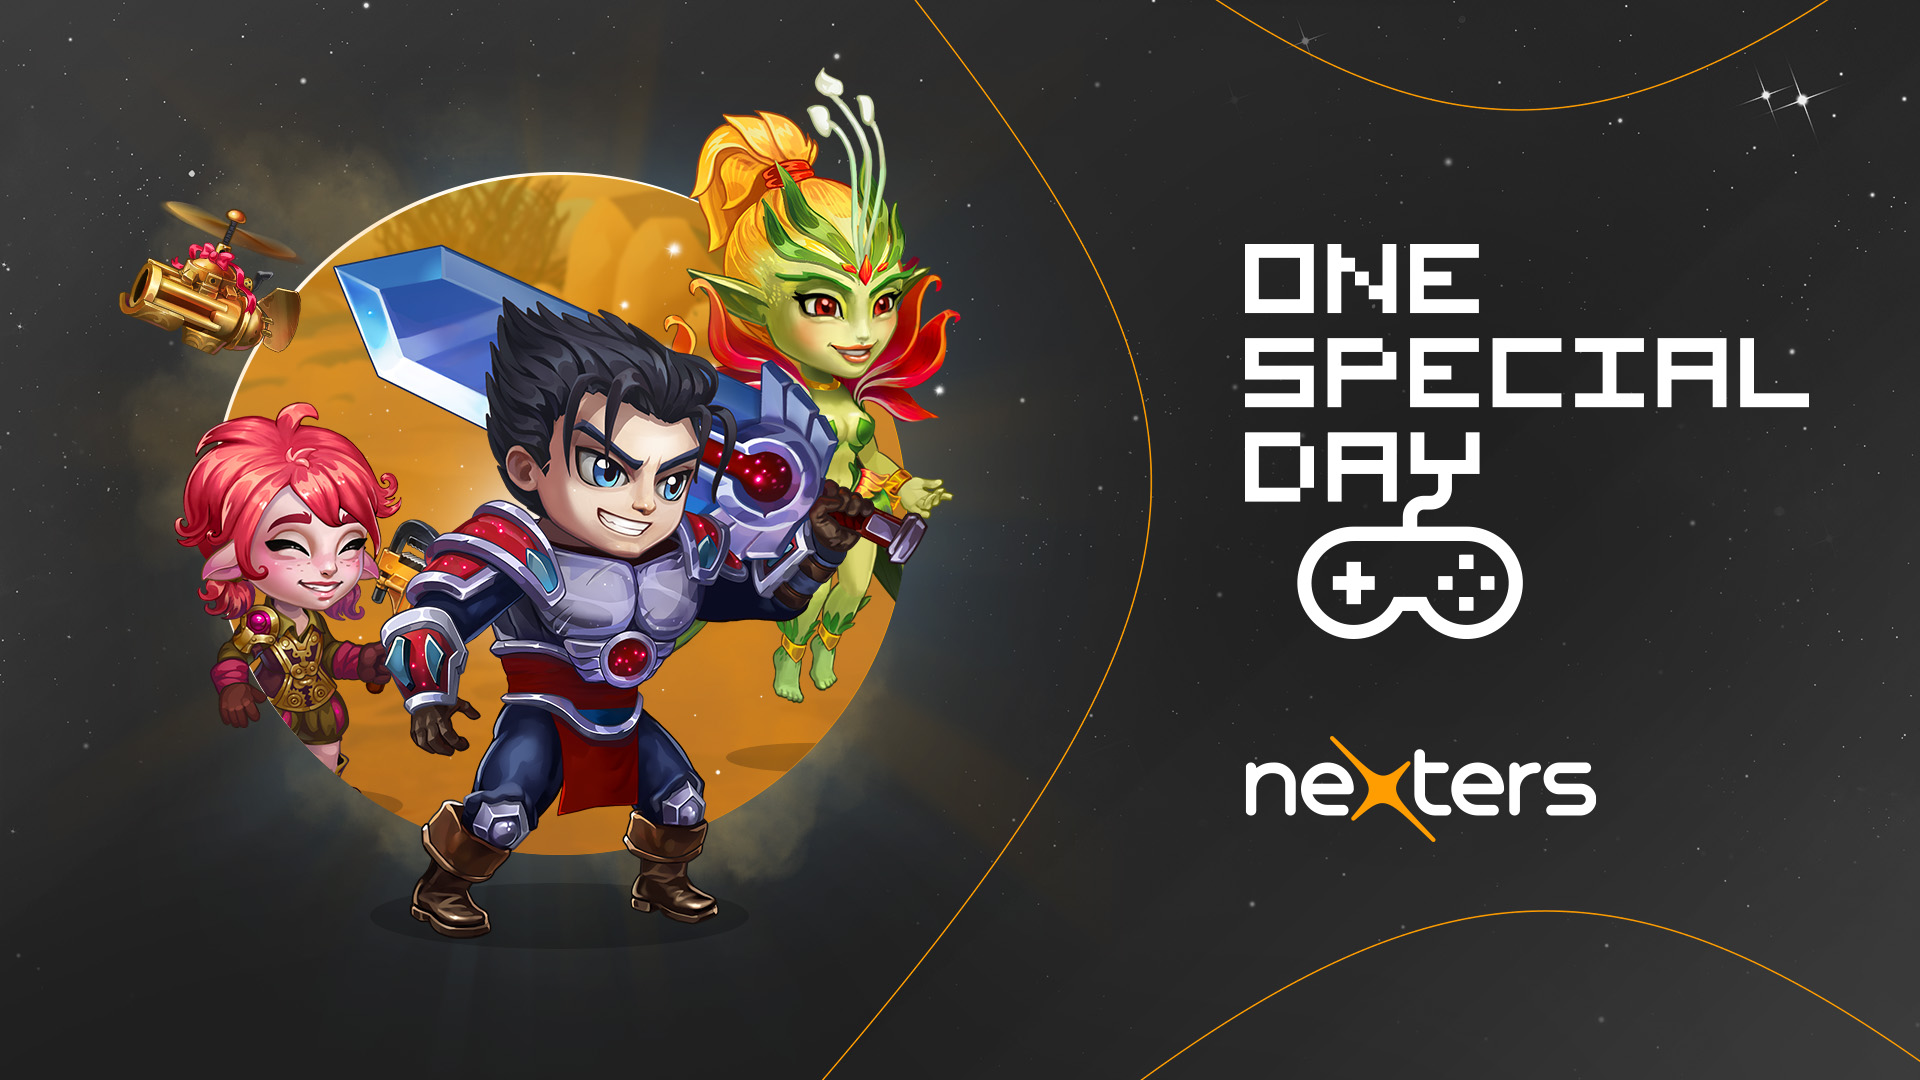 graphic with cartoon characters on left. One special day and nexters logos on the right